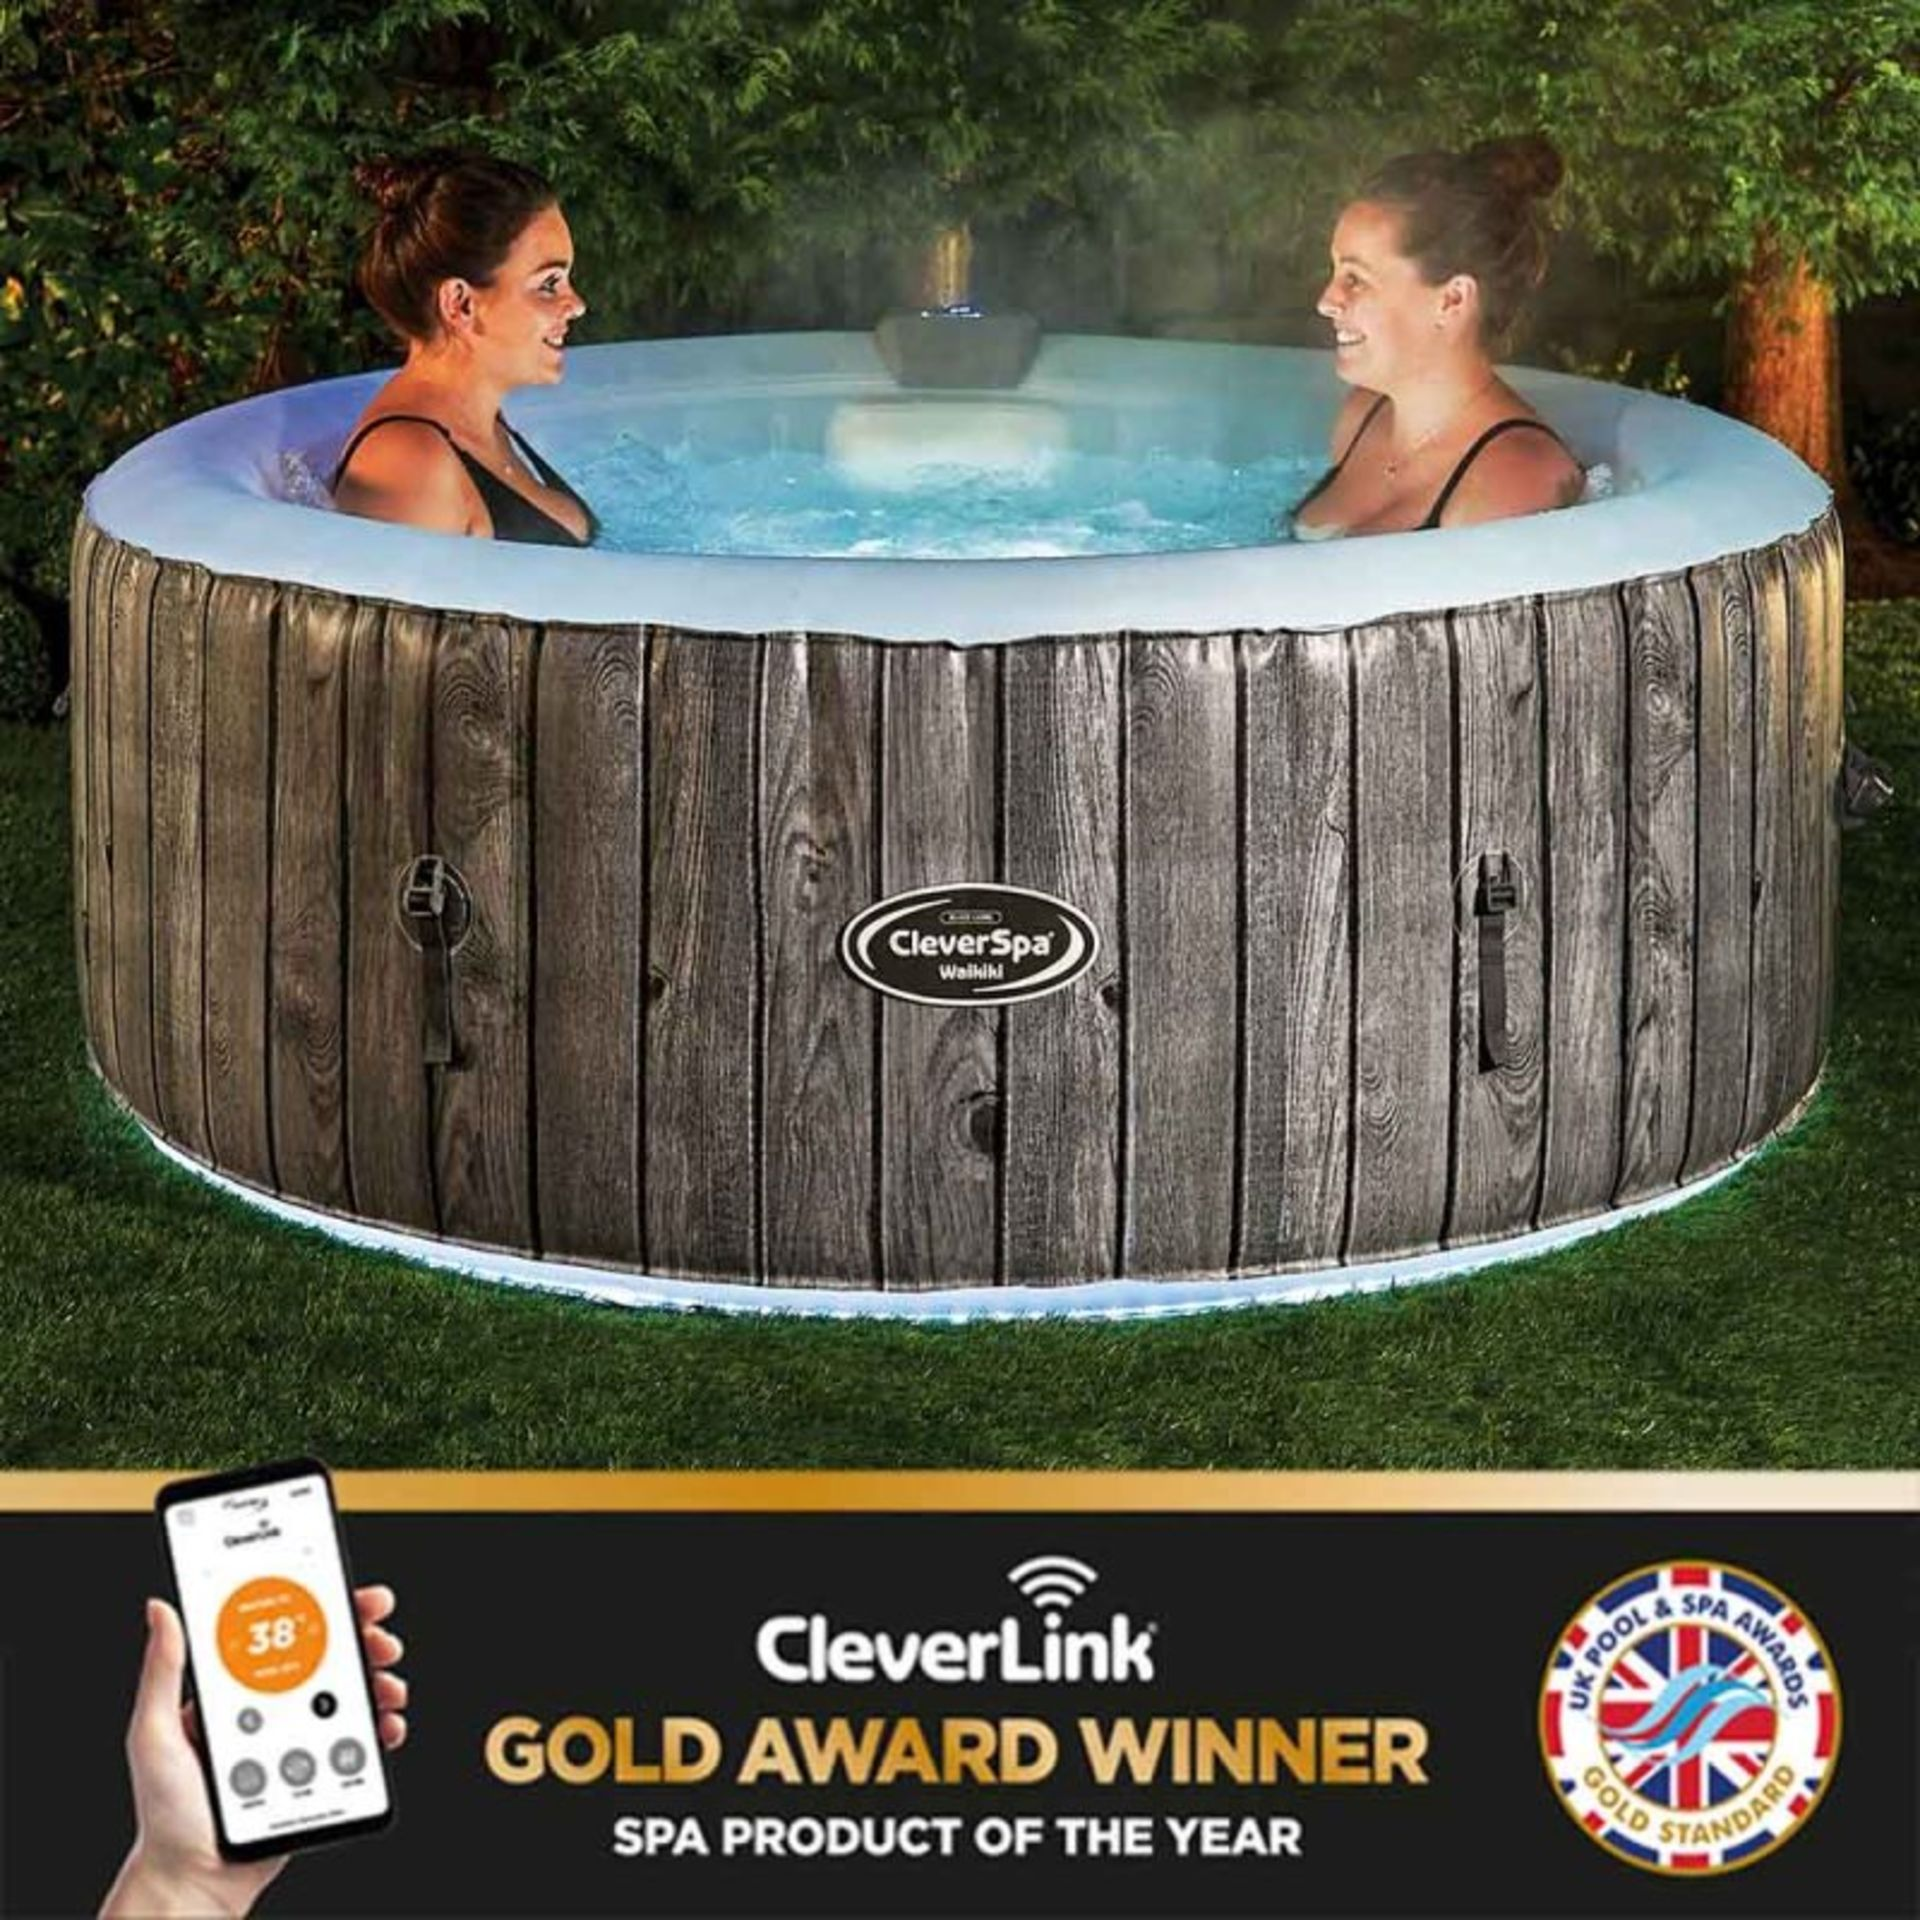 (REF2100745) 1 Pallet of Customer Returns - Retail value at new £1872.52. To include: CLEVERSPA 4